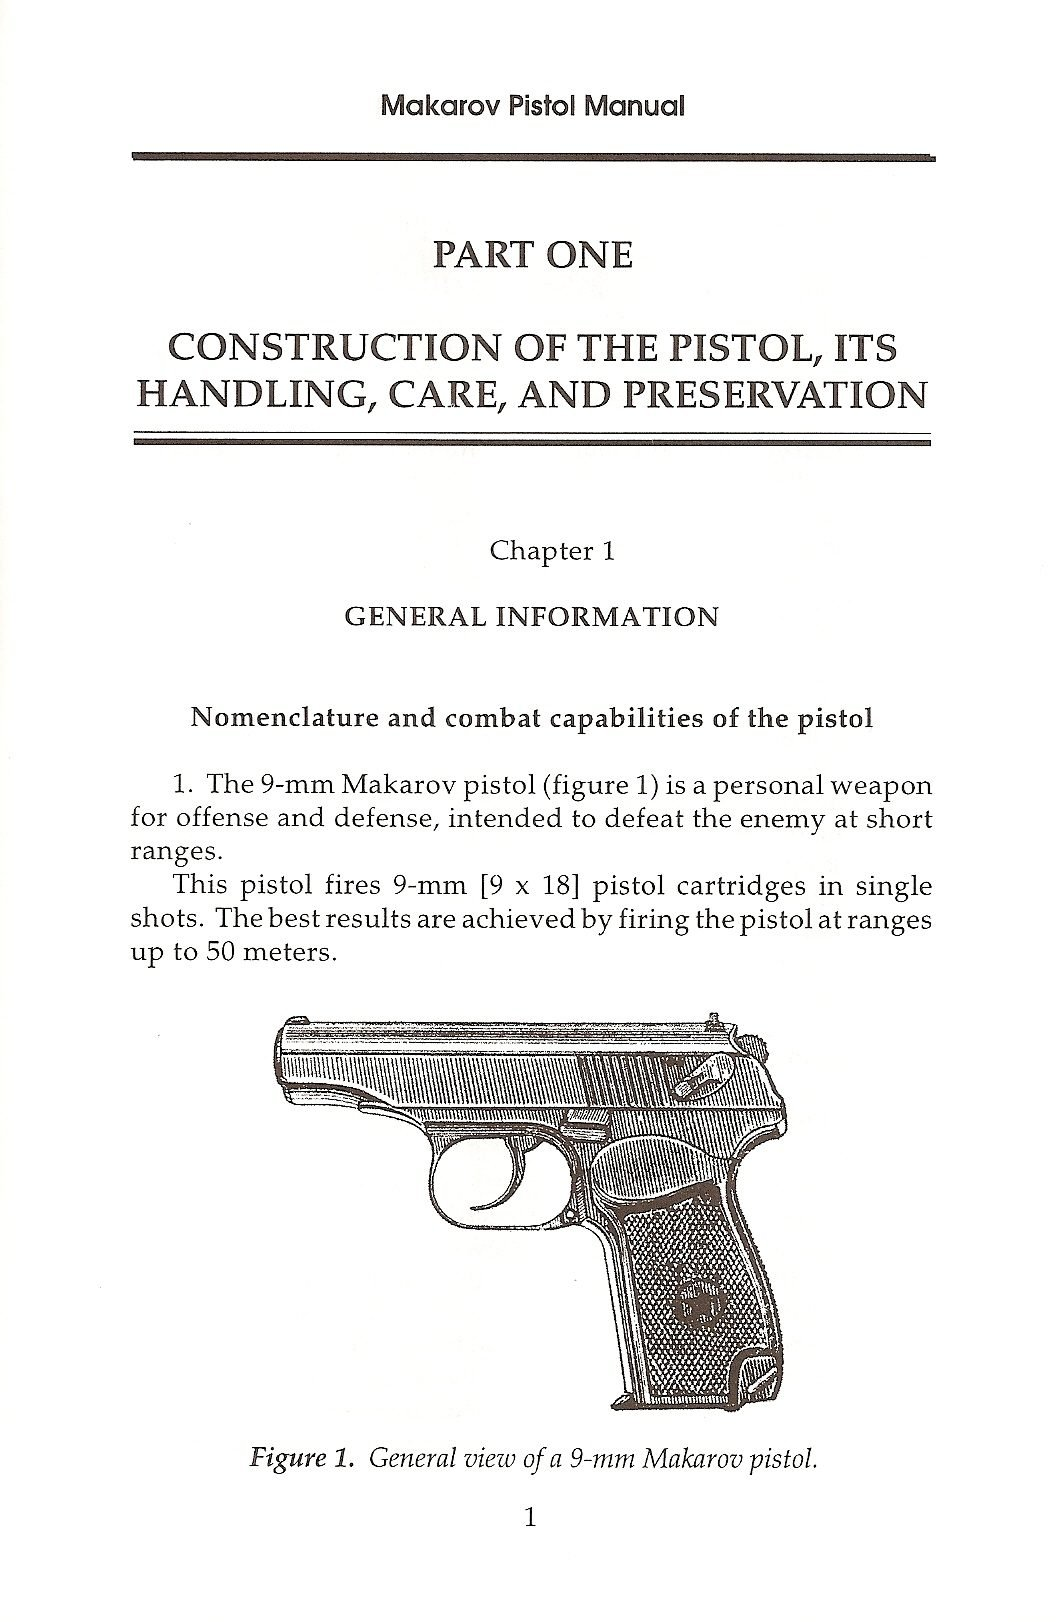 Official 9mm Makarov Pistol Manual James Gebhardt 9780879471460 Download The Mossberg 500 Diagram Pdf Or View Schematic Online Books